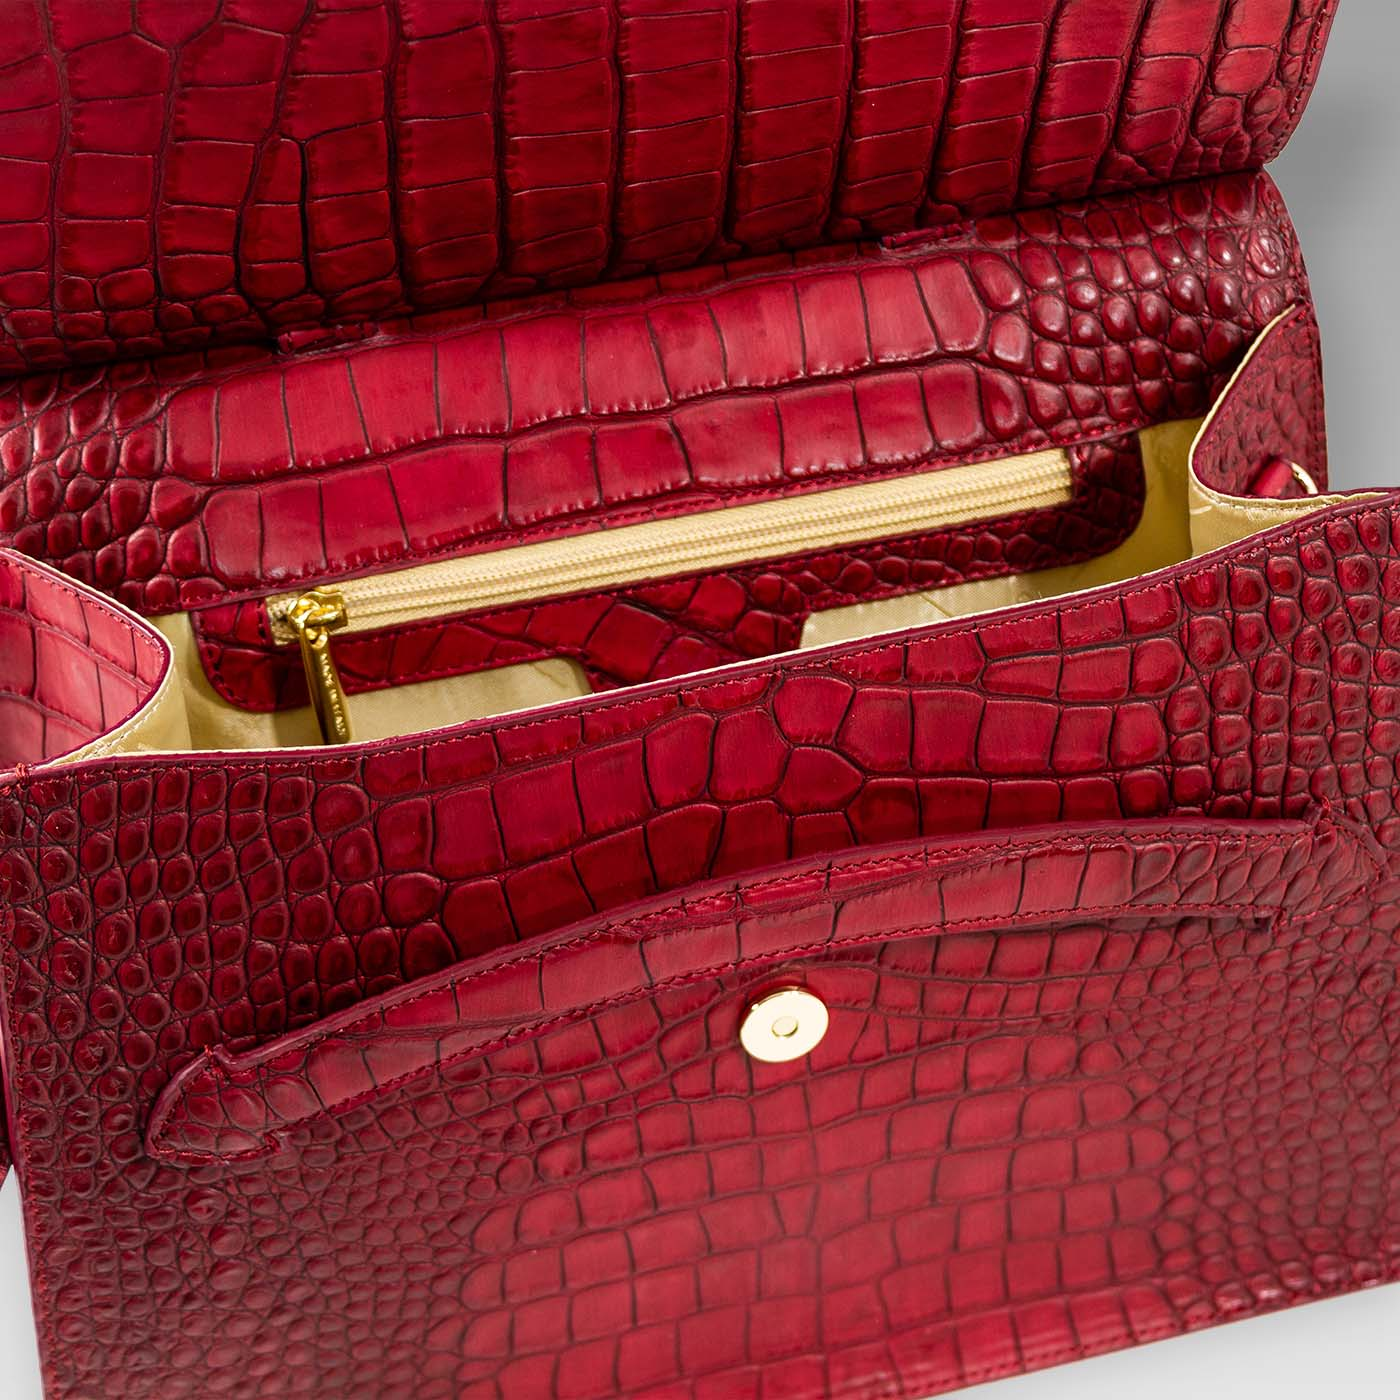 Valentino_Orlandi_Large_Purse_Scarlet_Red_Croc_Embossed_Leather_Tote_01VO42161CLRD_04.jpg